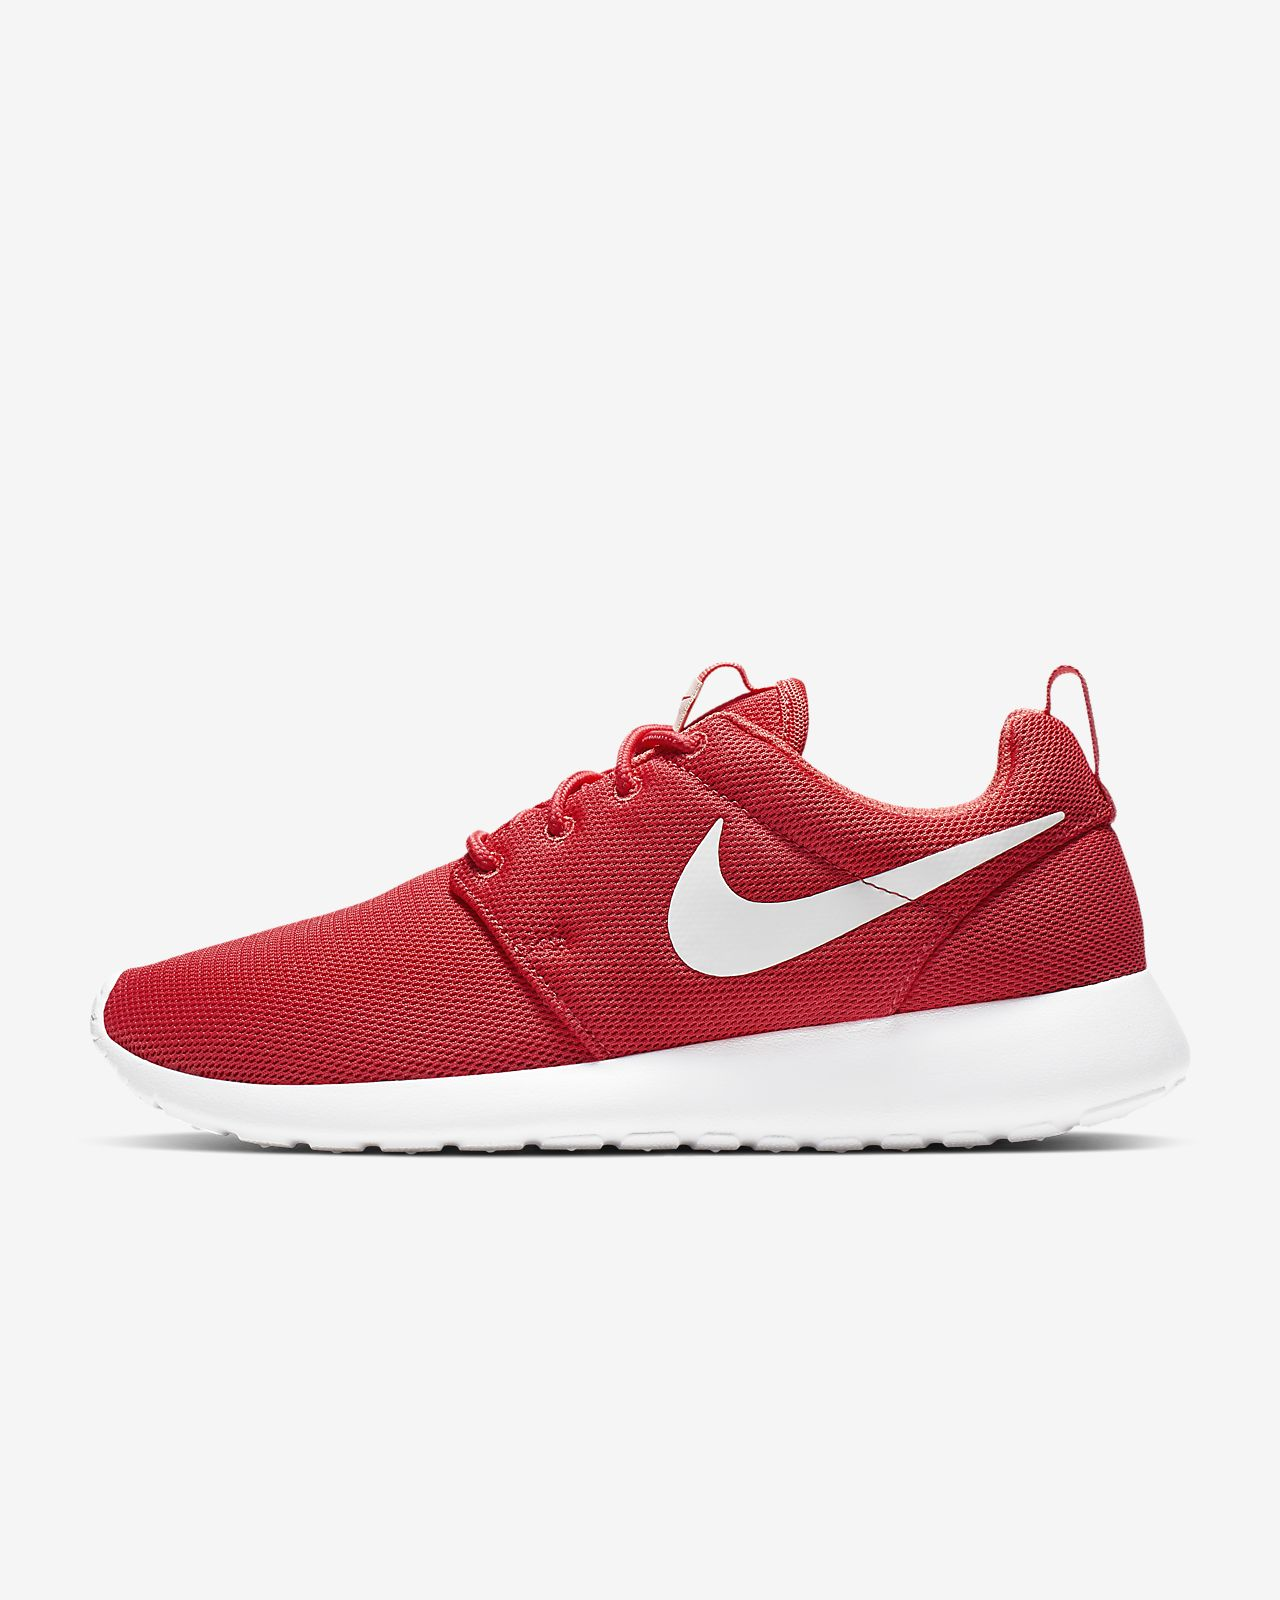 3db3194c91922 Nike Roshe One Women s Shoe. Nike.com